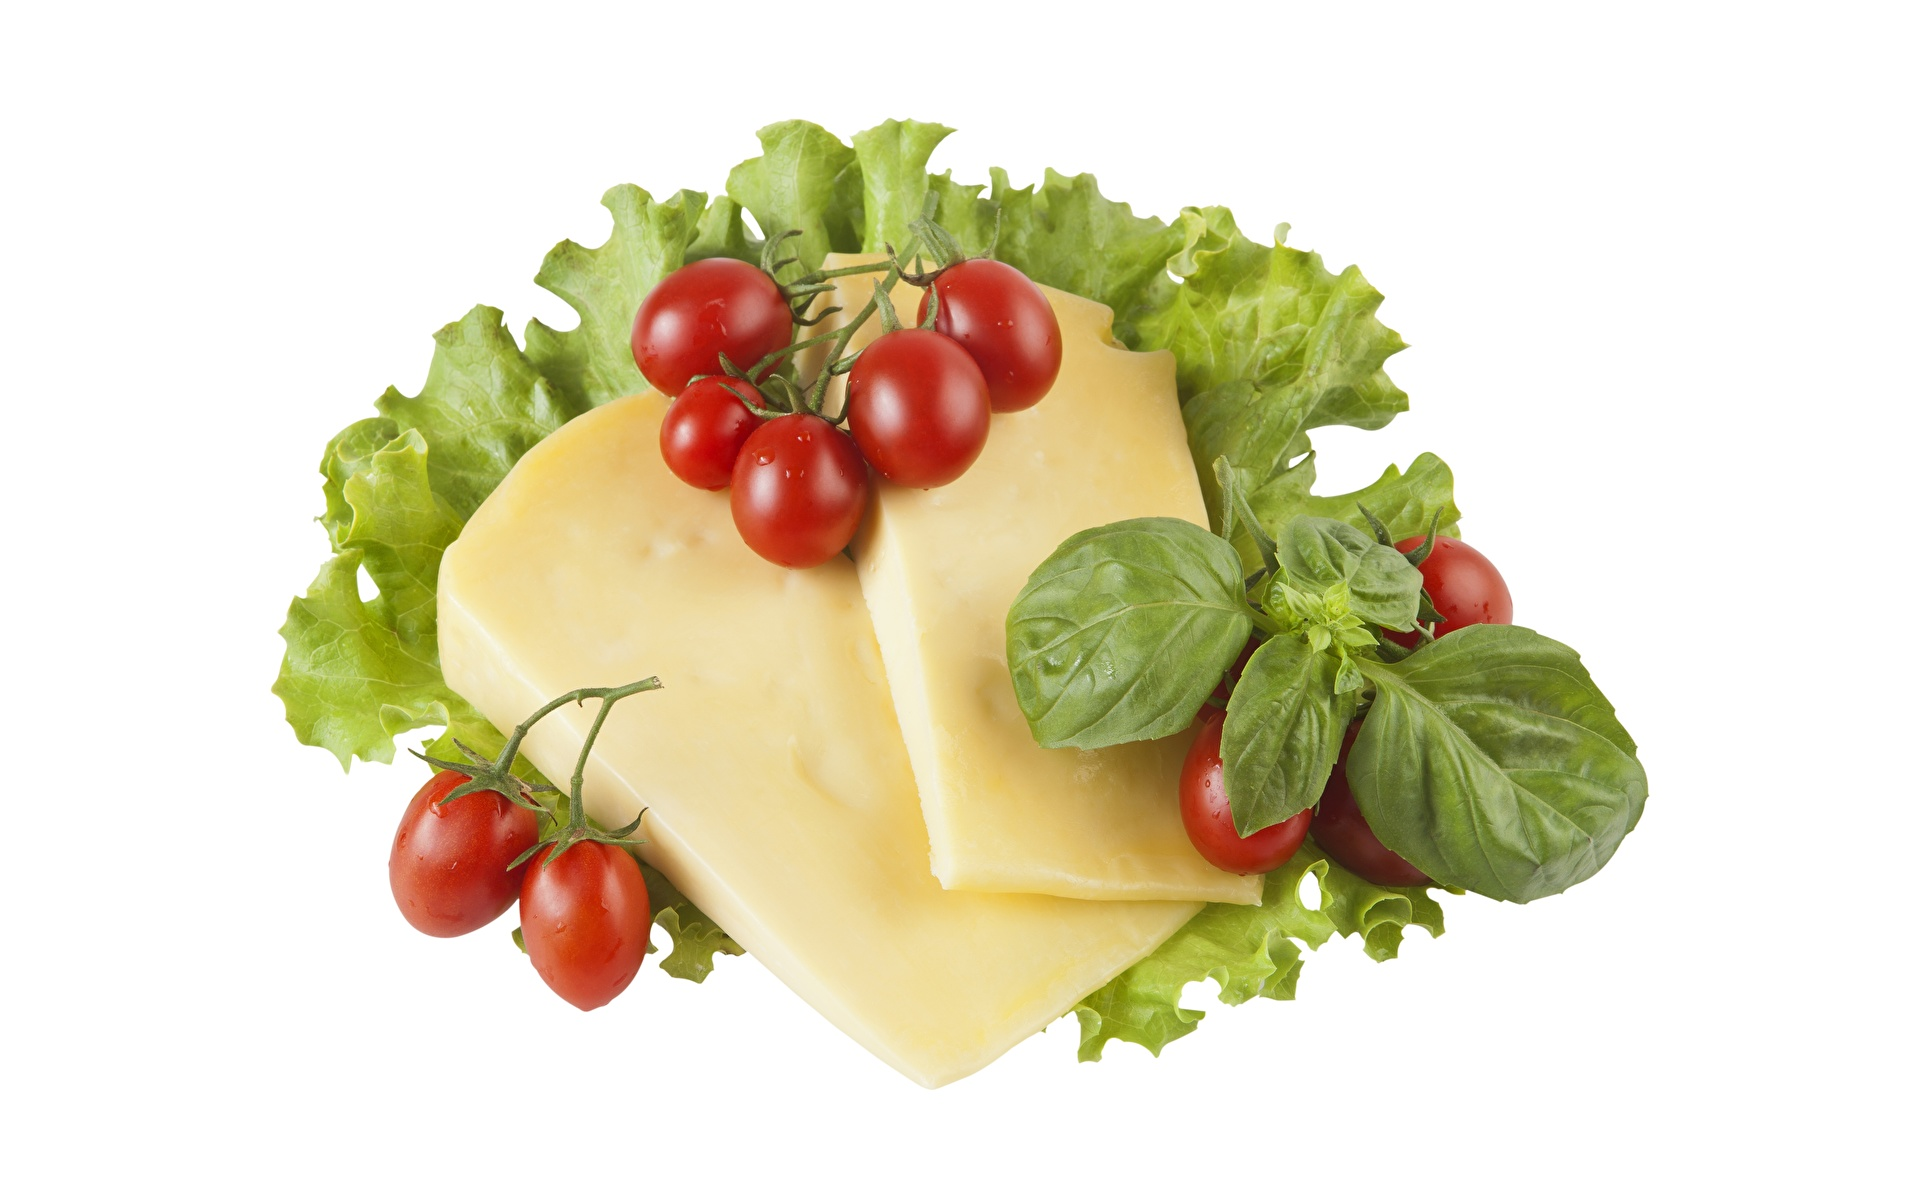 1920x1200 Fromage Tomate Fond blanc Aliments en tranches aliments, tomates, tranchées Nourriture